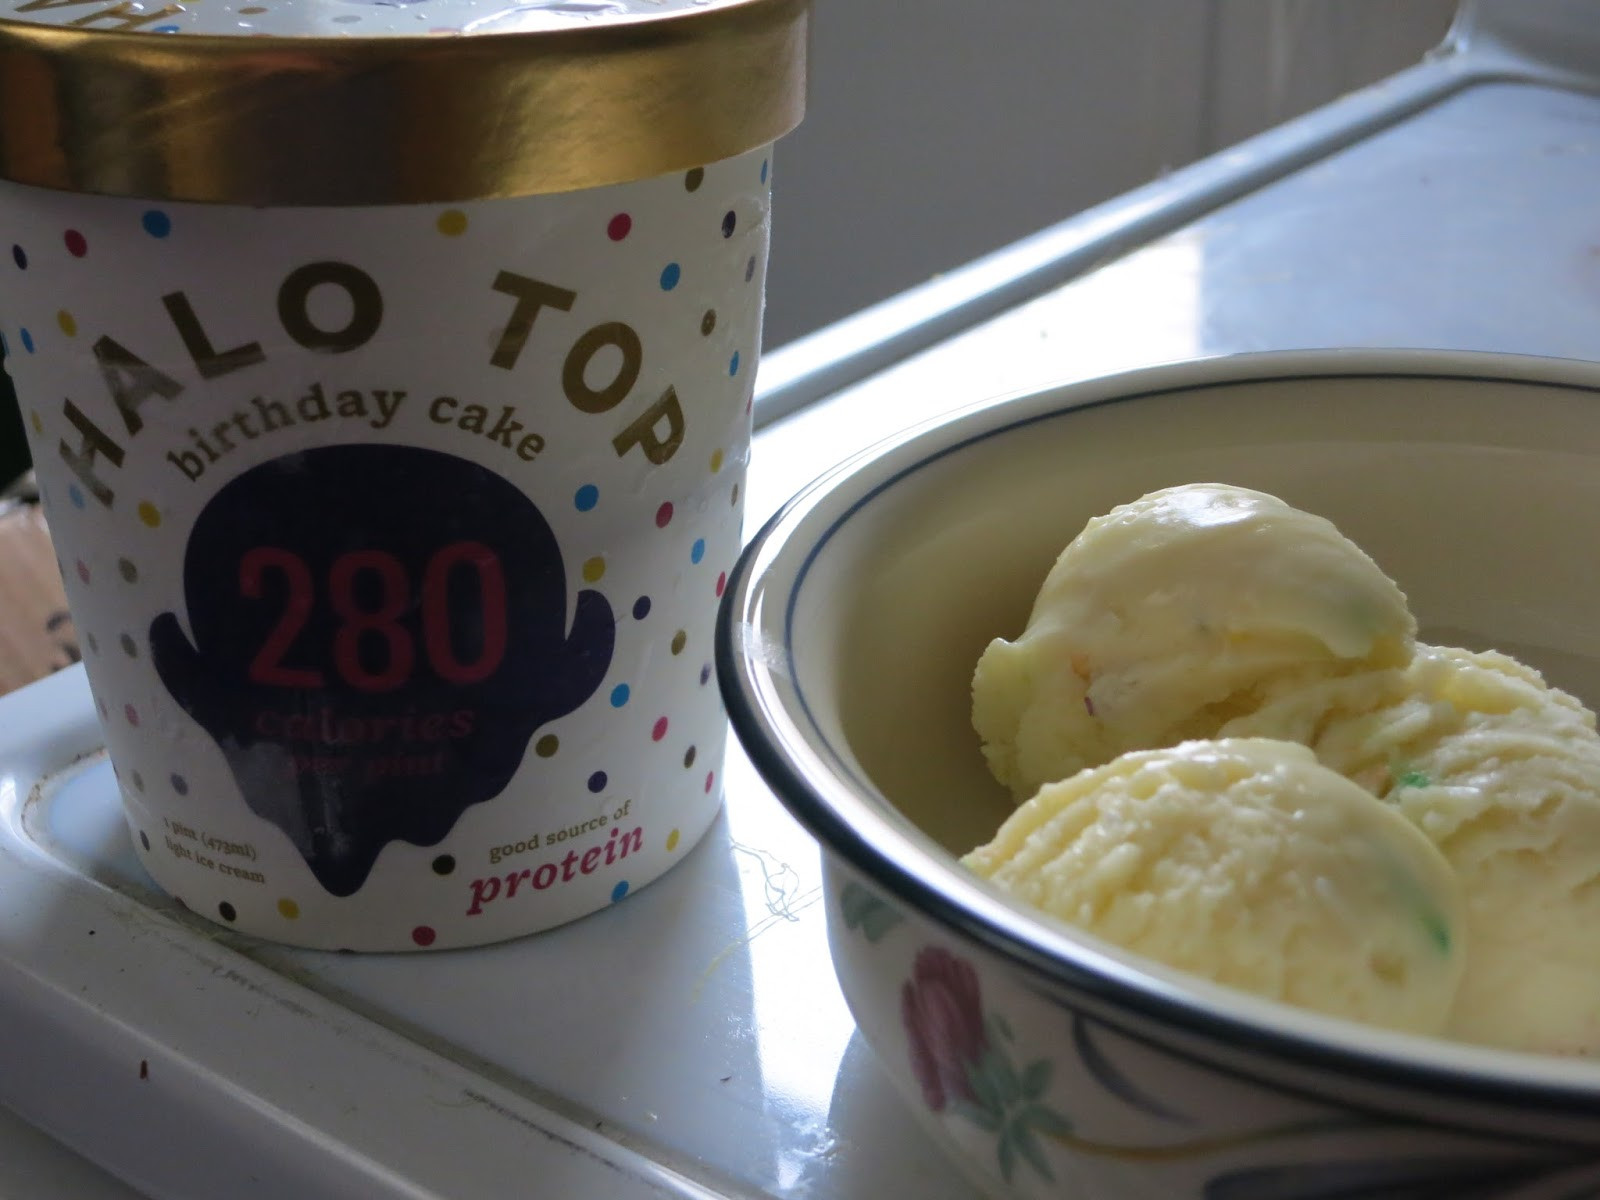 Best ideas about Halo Top Birthday Cake . Save or Pin Susan s Disney Family Halo Top healthy Ice Cream that Now.